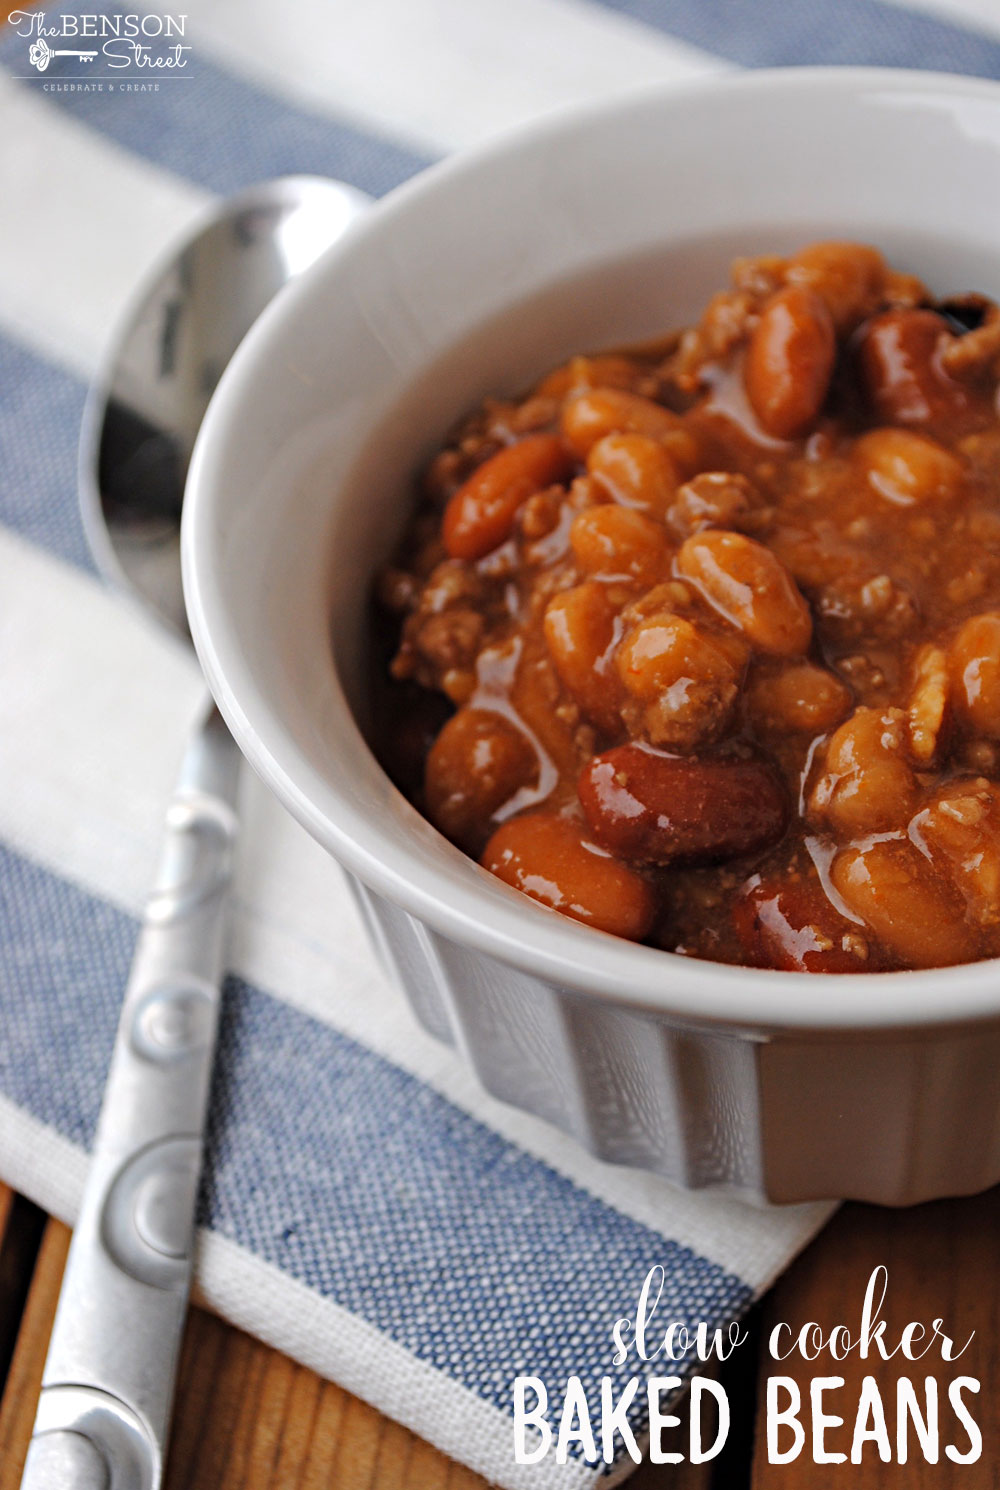 Slow Cooker Baked Beans - The Benson Street